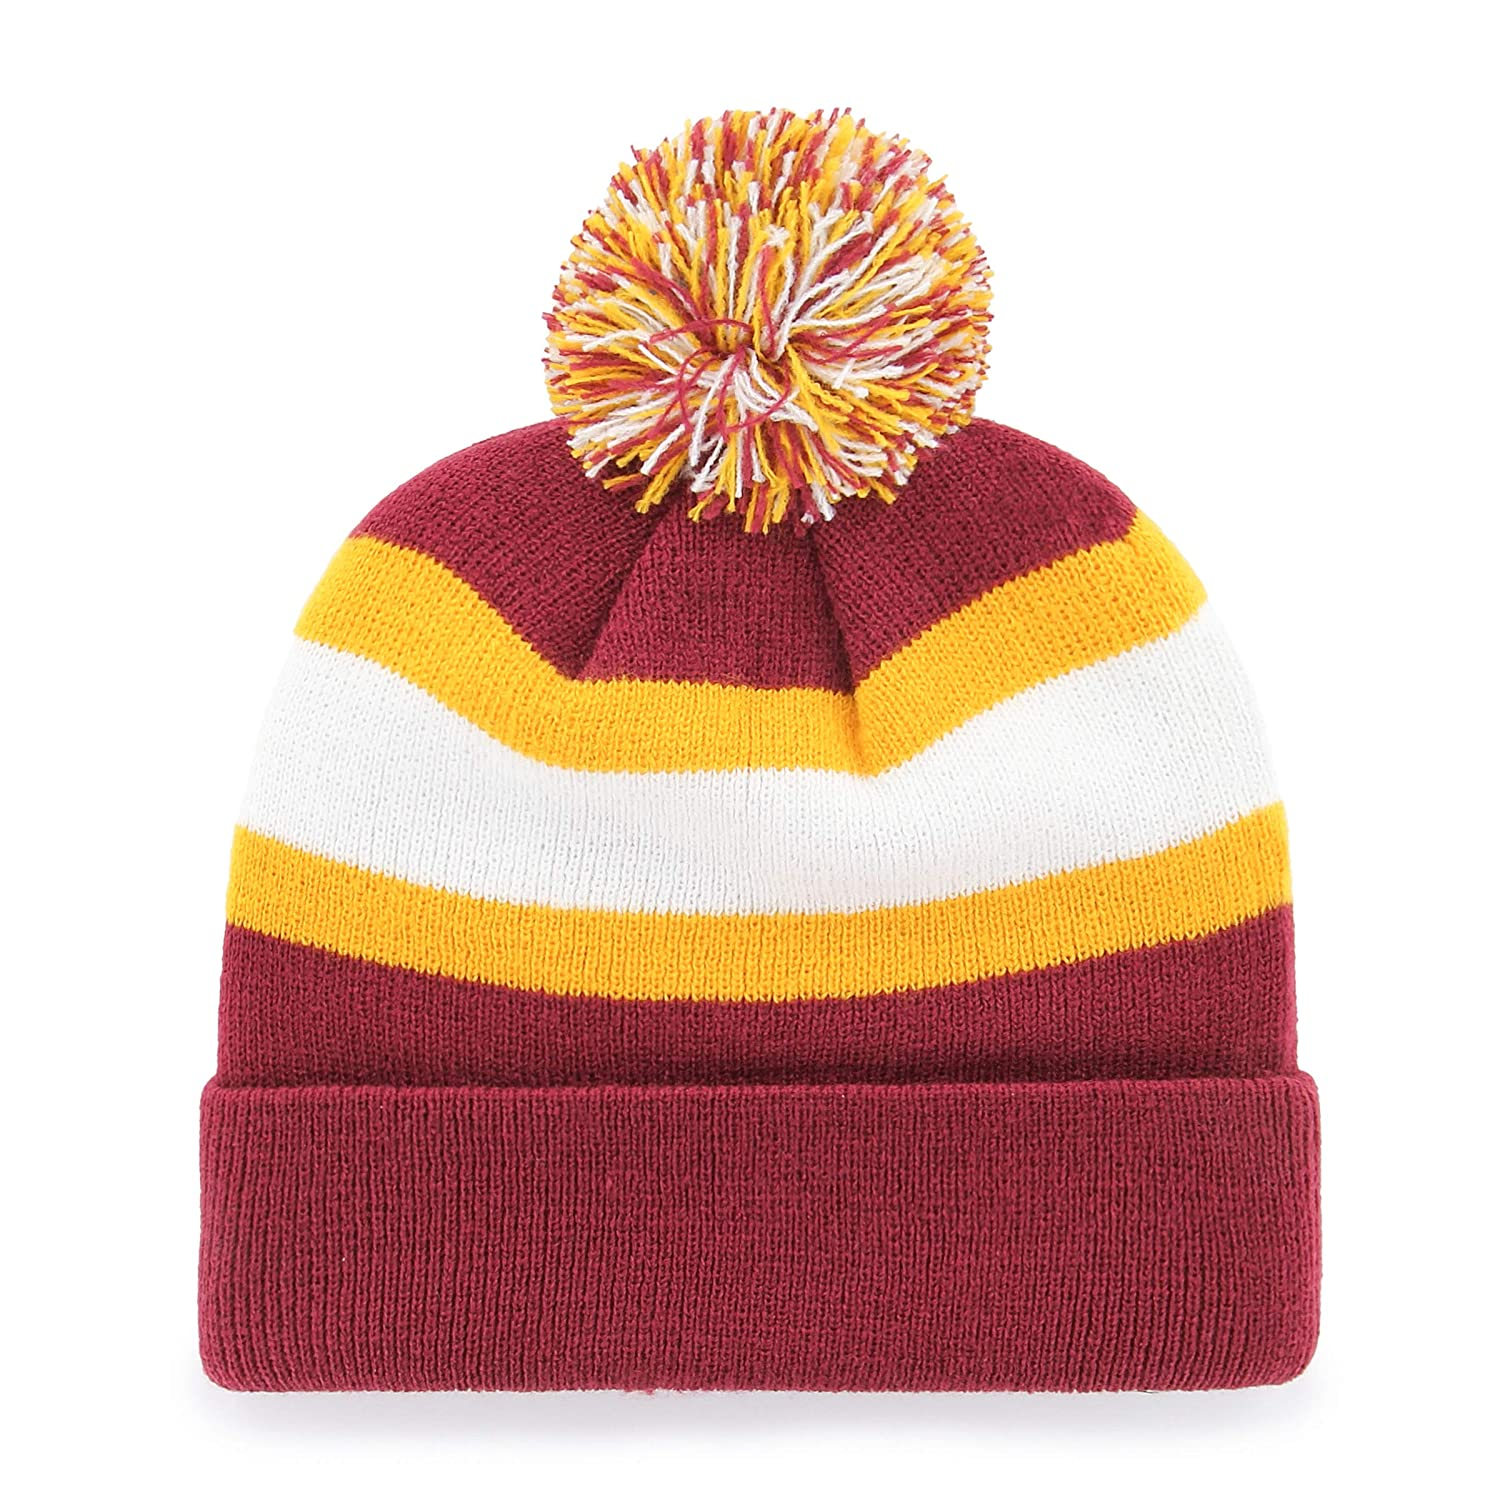 8c709baf3949d OTS NFL Unisex-Adult Rush Down Cuff Knit Cap with Pom Dark Red One Size  larger image